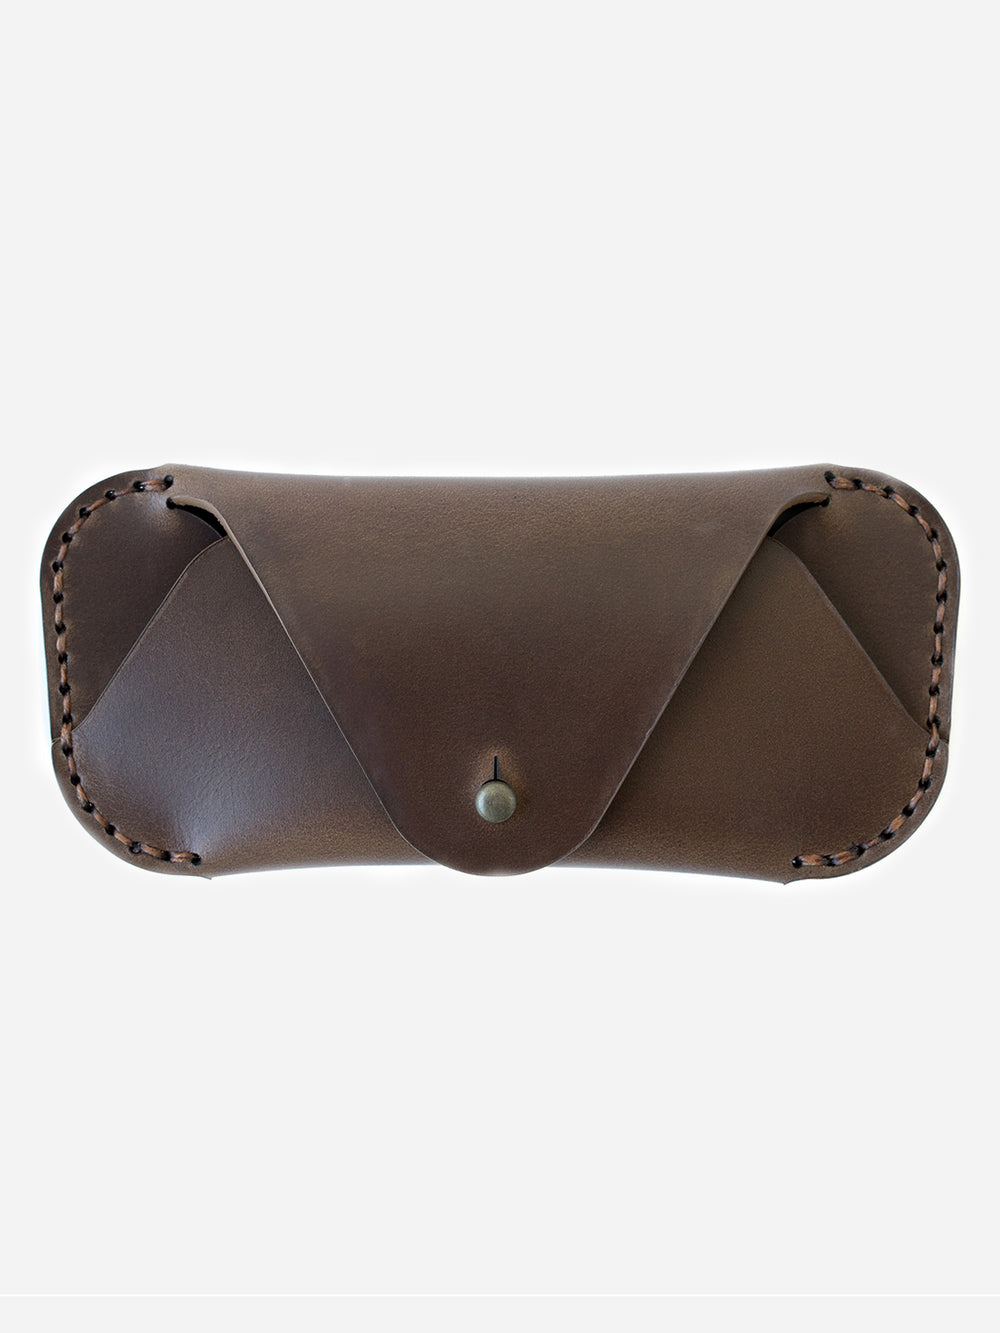 BARK mens glasses case brown leather eyewear sleeve makr